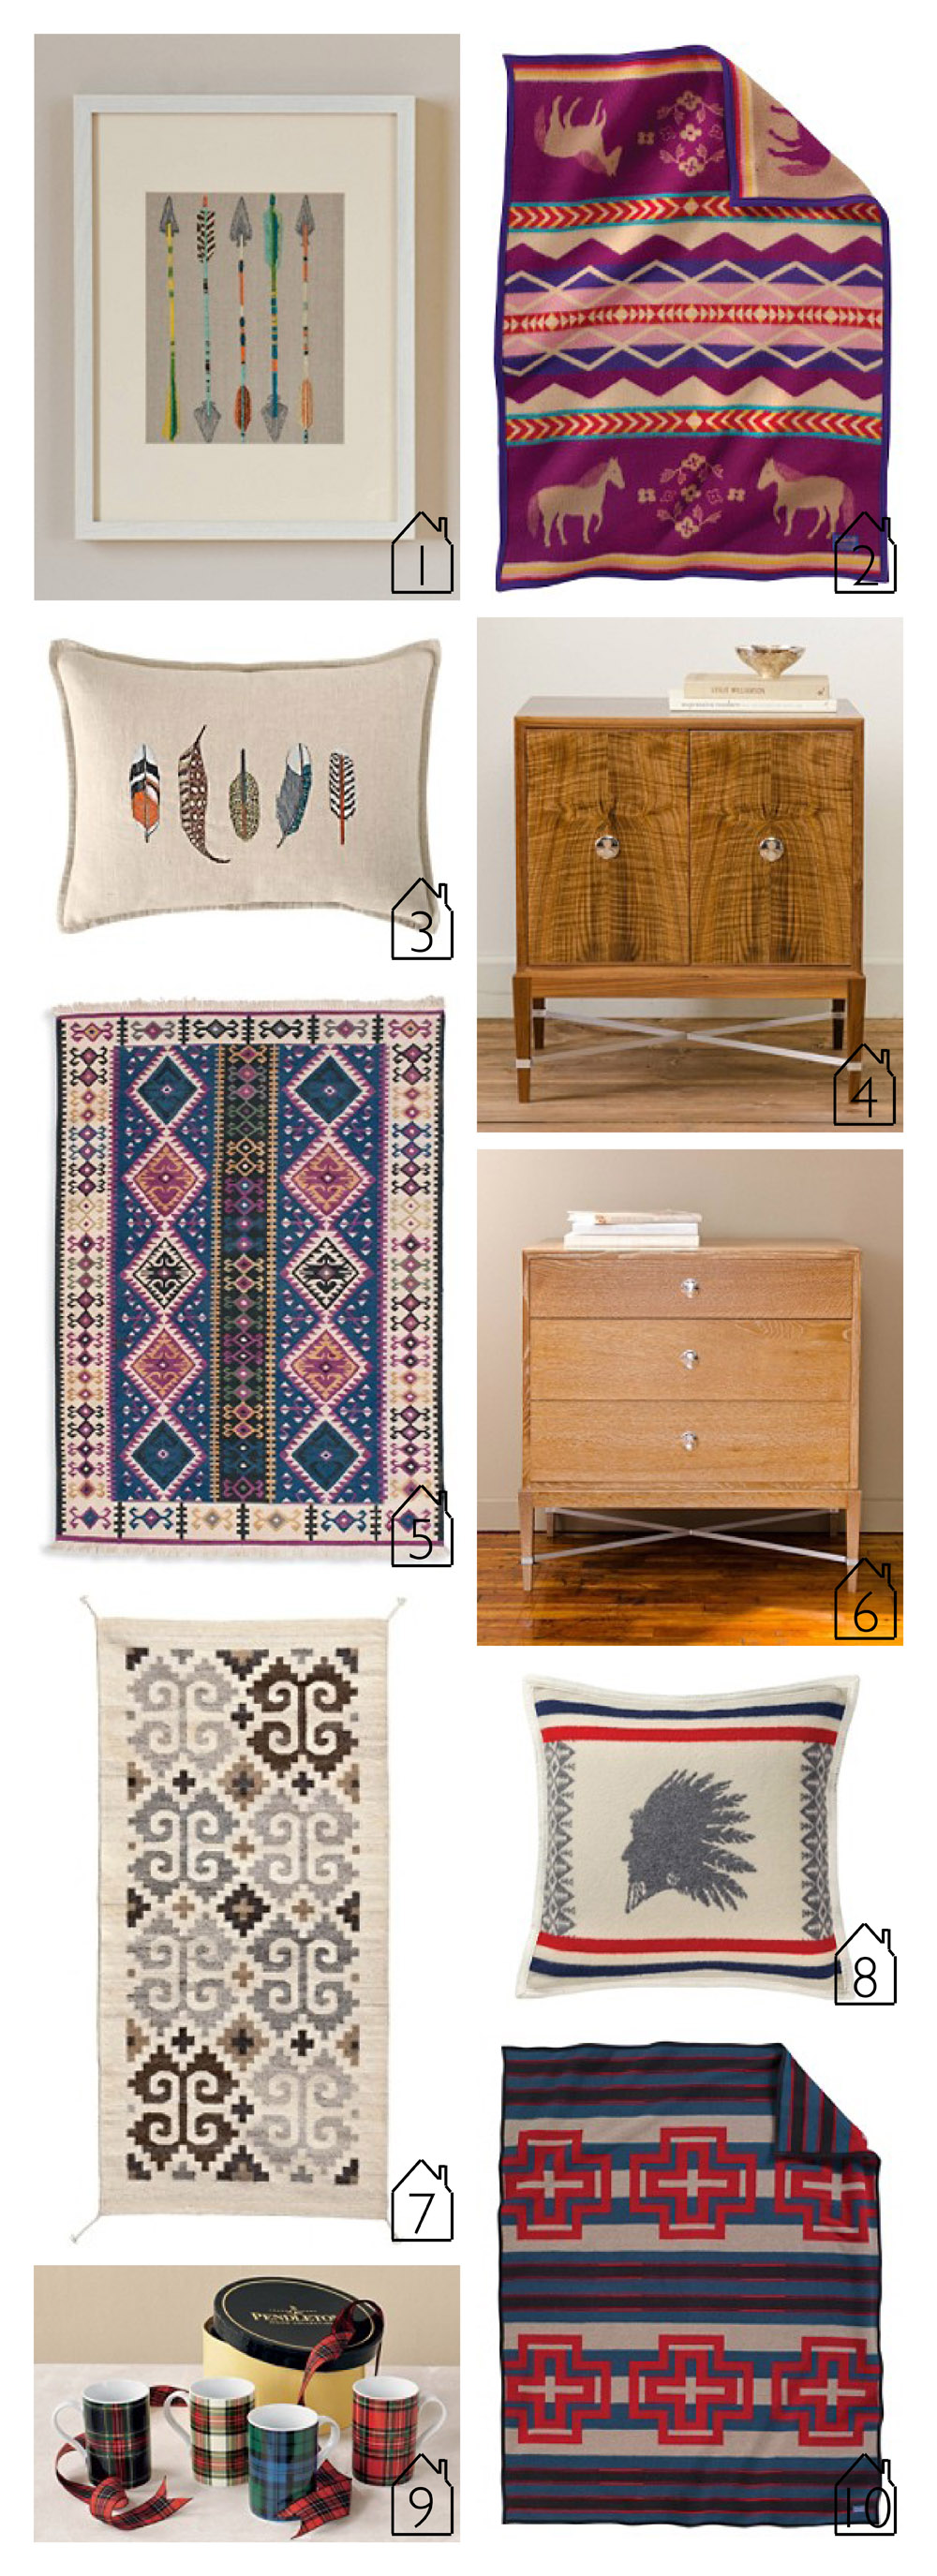 1.  Five Arrows Frames Stitched Artwork    2.  Painted Pony Crib Blanket   3.  Small-Feathers Pillow   4.  Salem Console   5.  Nazomla Wool Kilim Rug  6.  3-Drawer Salem Dresser   7.  Caracol Zapotec Rug   8.  Heroic Chief Pillow   9.  Tartan Mugs   10.  Compass Stripe Blanket